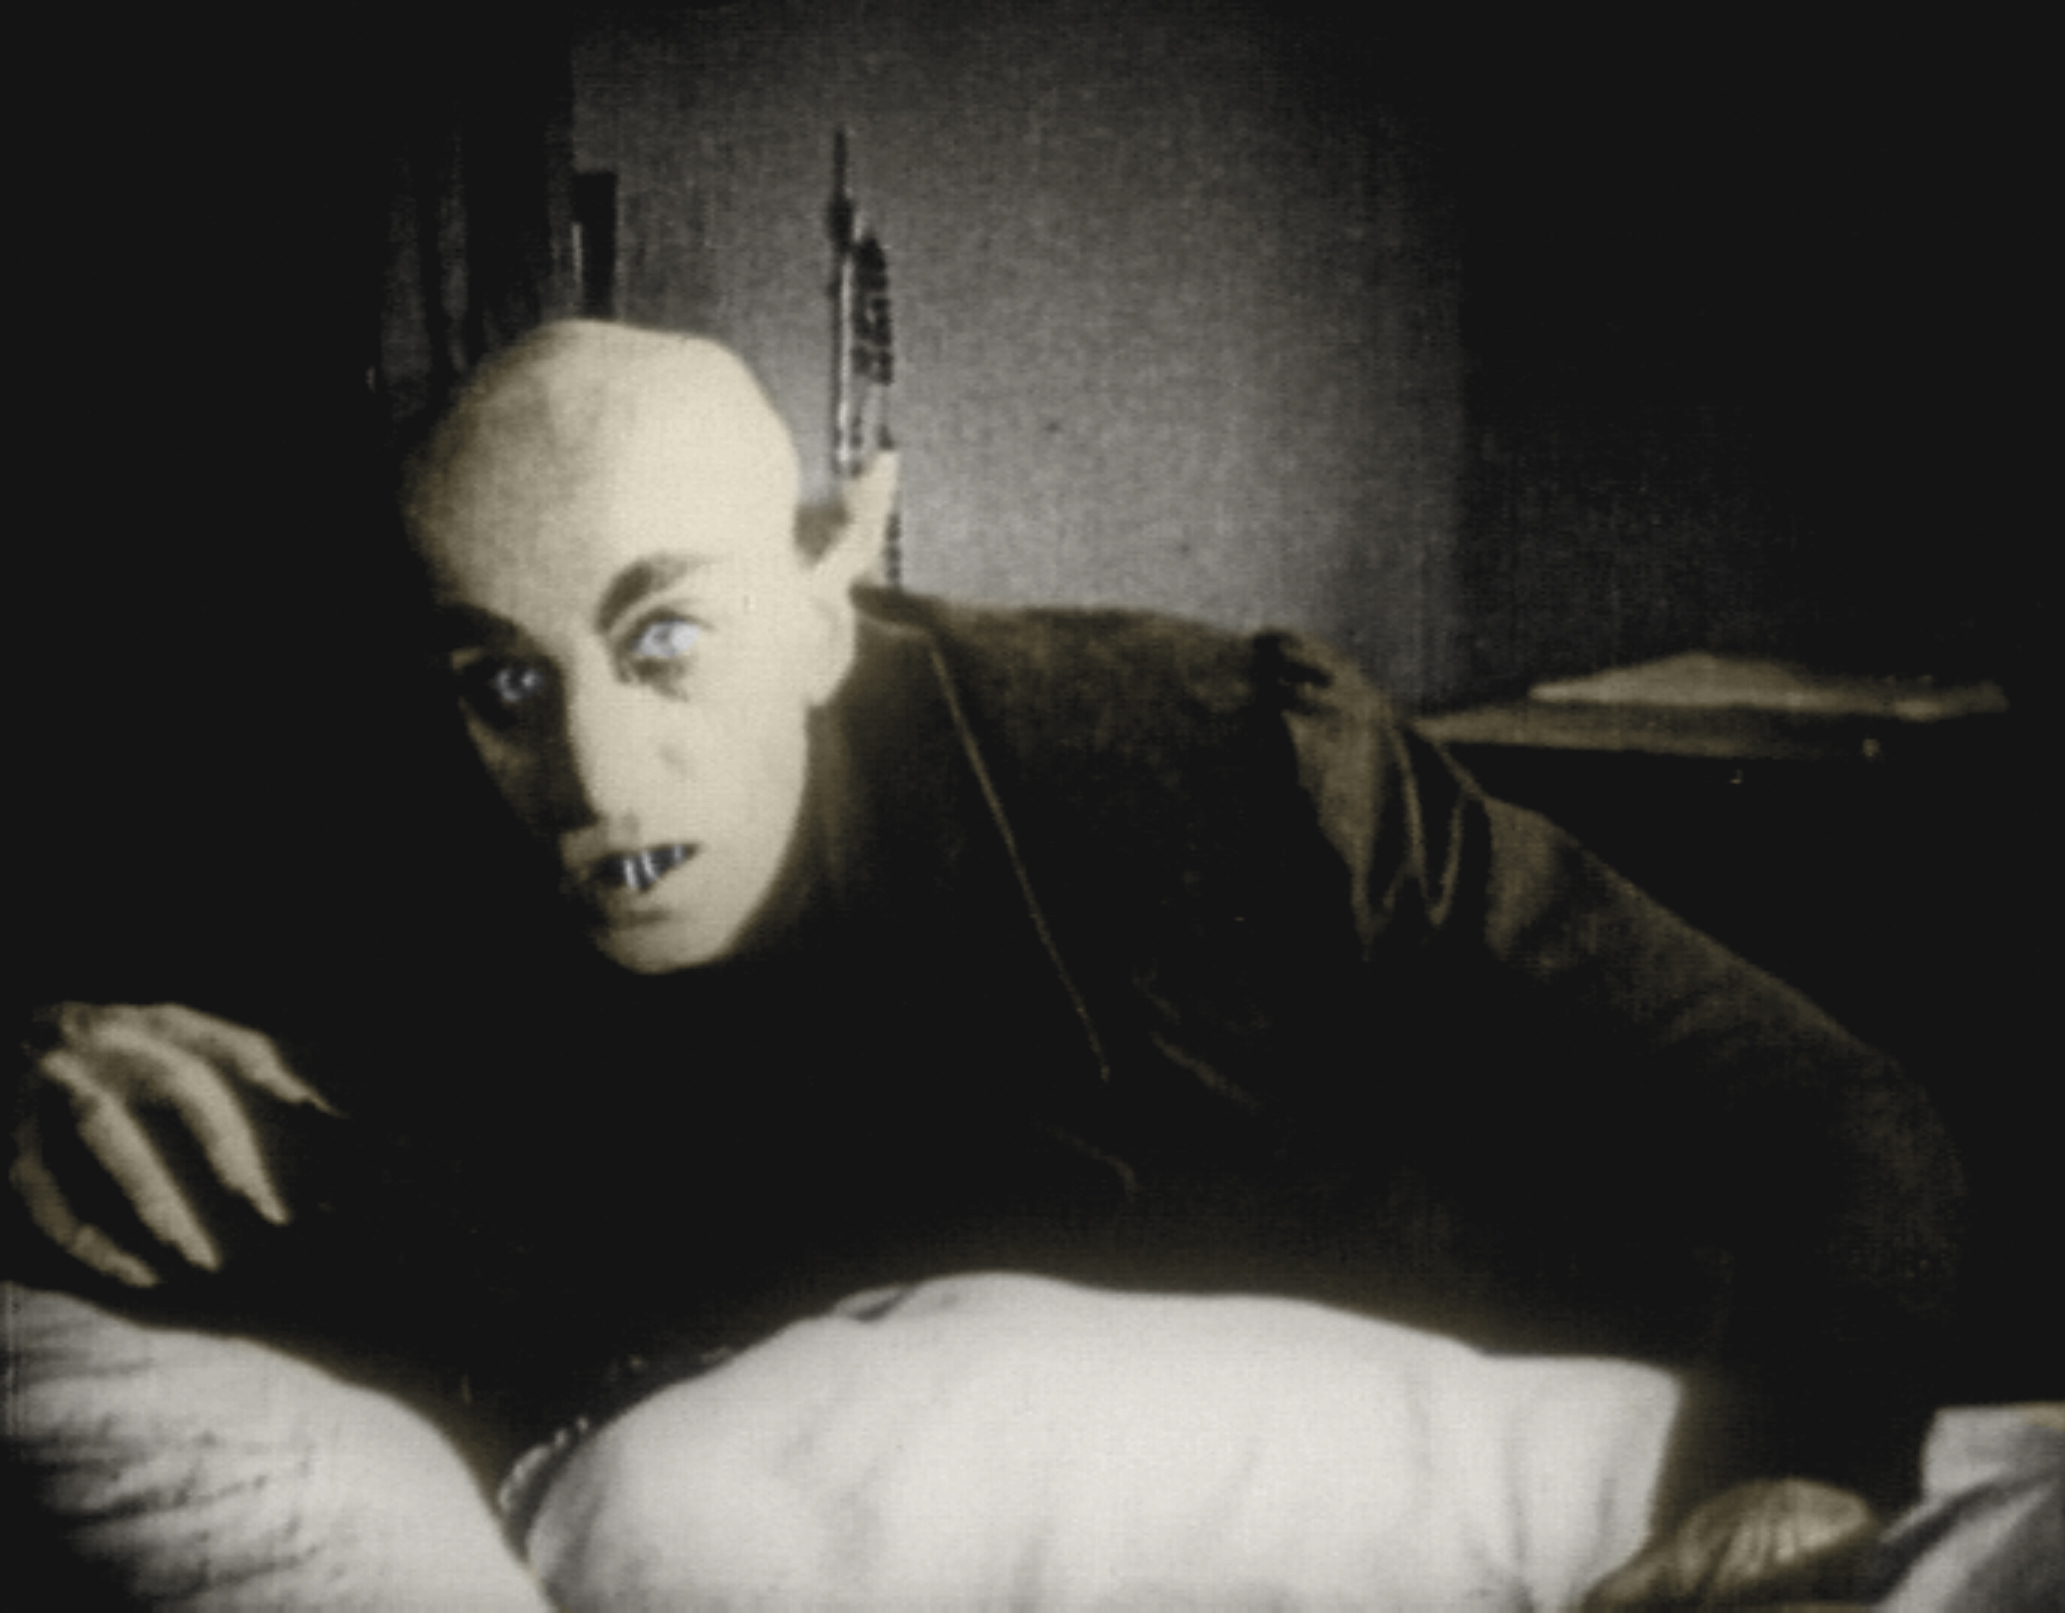 nosferatu essay Nosferatu essays: over 180,000 nosferatu essays, nosferatu term papers, nosferatu research paper, book reports 184 990 essays, term and research papers available for.